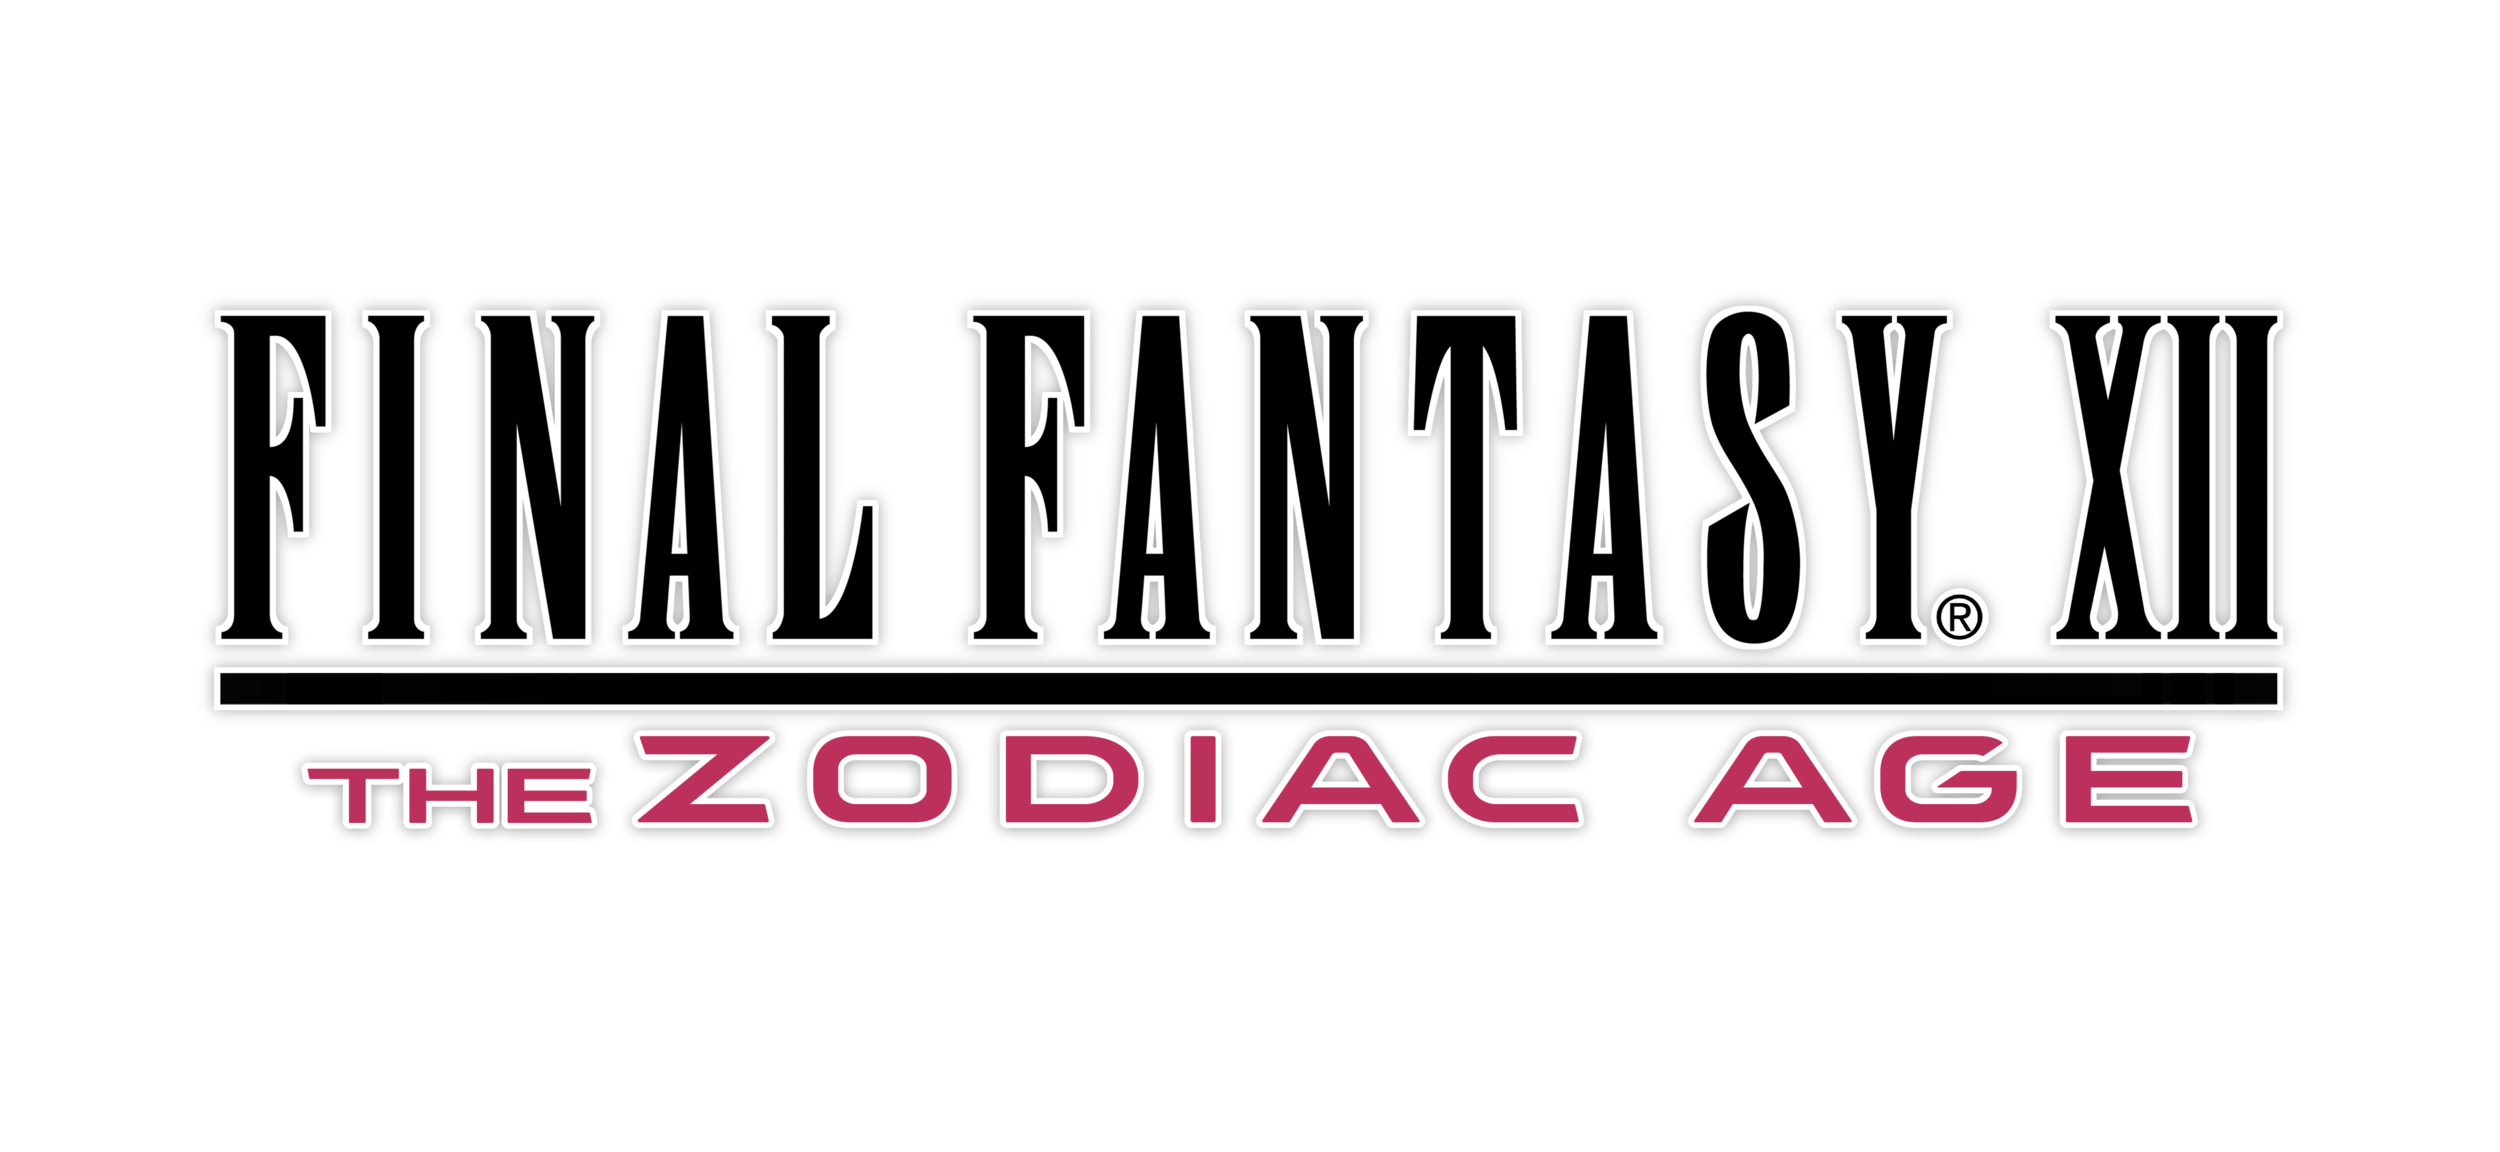 To coincide with Tokyo Game Show 2016, SQUARE ENIX® released a brand new trailer for the upcoming game, FINAL FANTASY® XII THE ZODIAC AGE. The trailer further showcases some of the newly re-mastered visuals and environments as well as gameplay in action.  With  FINAL FANTASY XII THE ZODIAC  AGE, fans can finally experience the world of Ivalice like never before  . The high definition release will also give western audiences the first opportunity to experience the Zodiac Job System, a 12-job character progression system first introduced in the 2007 title, FINAL FANTASY XII INTERNATIONAL ZODIAC JOB SYSTEM.    FINAL FANTASY XII THE ZODIAC AGE will be available in 2017 for the PlayStation®4 computer entertainment system. For more information, please visit: www.finalfantasyxii.com .    About FINAL FANTASY XII:   Originally launched in 2006 for the PlayStation®2 computer entertainment system and known for introducing many landmark features to the FINAL FANTASY series, FINAL FANTASY XII takes place in the grand world of Ivalice, where the small kingdom of Dalmasca is left in ruin and uncertainty. Princess Ashe, the one and only heir to the throne, devotes herself to the resistance to liberate her country. Vaan, a young man who lost his family in the war, dreams of flying freely in the skies. In a fight for freedom and fallen royalty, join these unlikely allies and their companions as they embark on a heroic adventure to free their homeland.     Related Links  Homepage: www.finalfantasyxii.com  Facebook Page: https://www.facebook.com/FinalFantasy  Twitter: https://twitter.com/finalfantasy    About Square Enix, Inc.  Square Enix, Inc. develops, publishes, distributes and licenses SQUARE ENIX®, EIDOS® and TAITO® branded entertainment content throughout the Americas as part of the Square Enix group of companies. Square Enix, Inc. is affiliated with a global network of leading development studios such as IO Interactive™, Crystal Dynamics®, and Eidos Montréal. The Square Enix gr